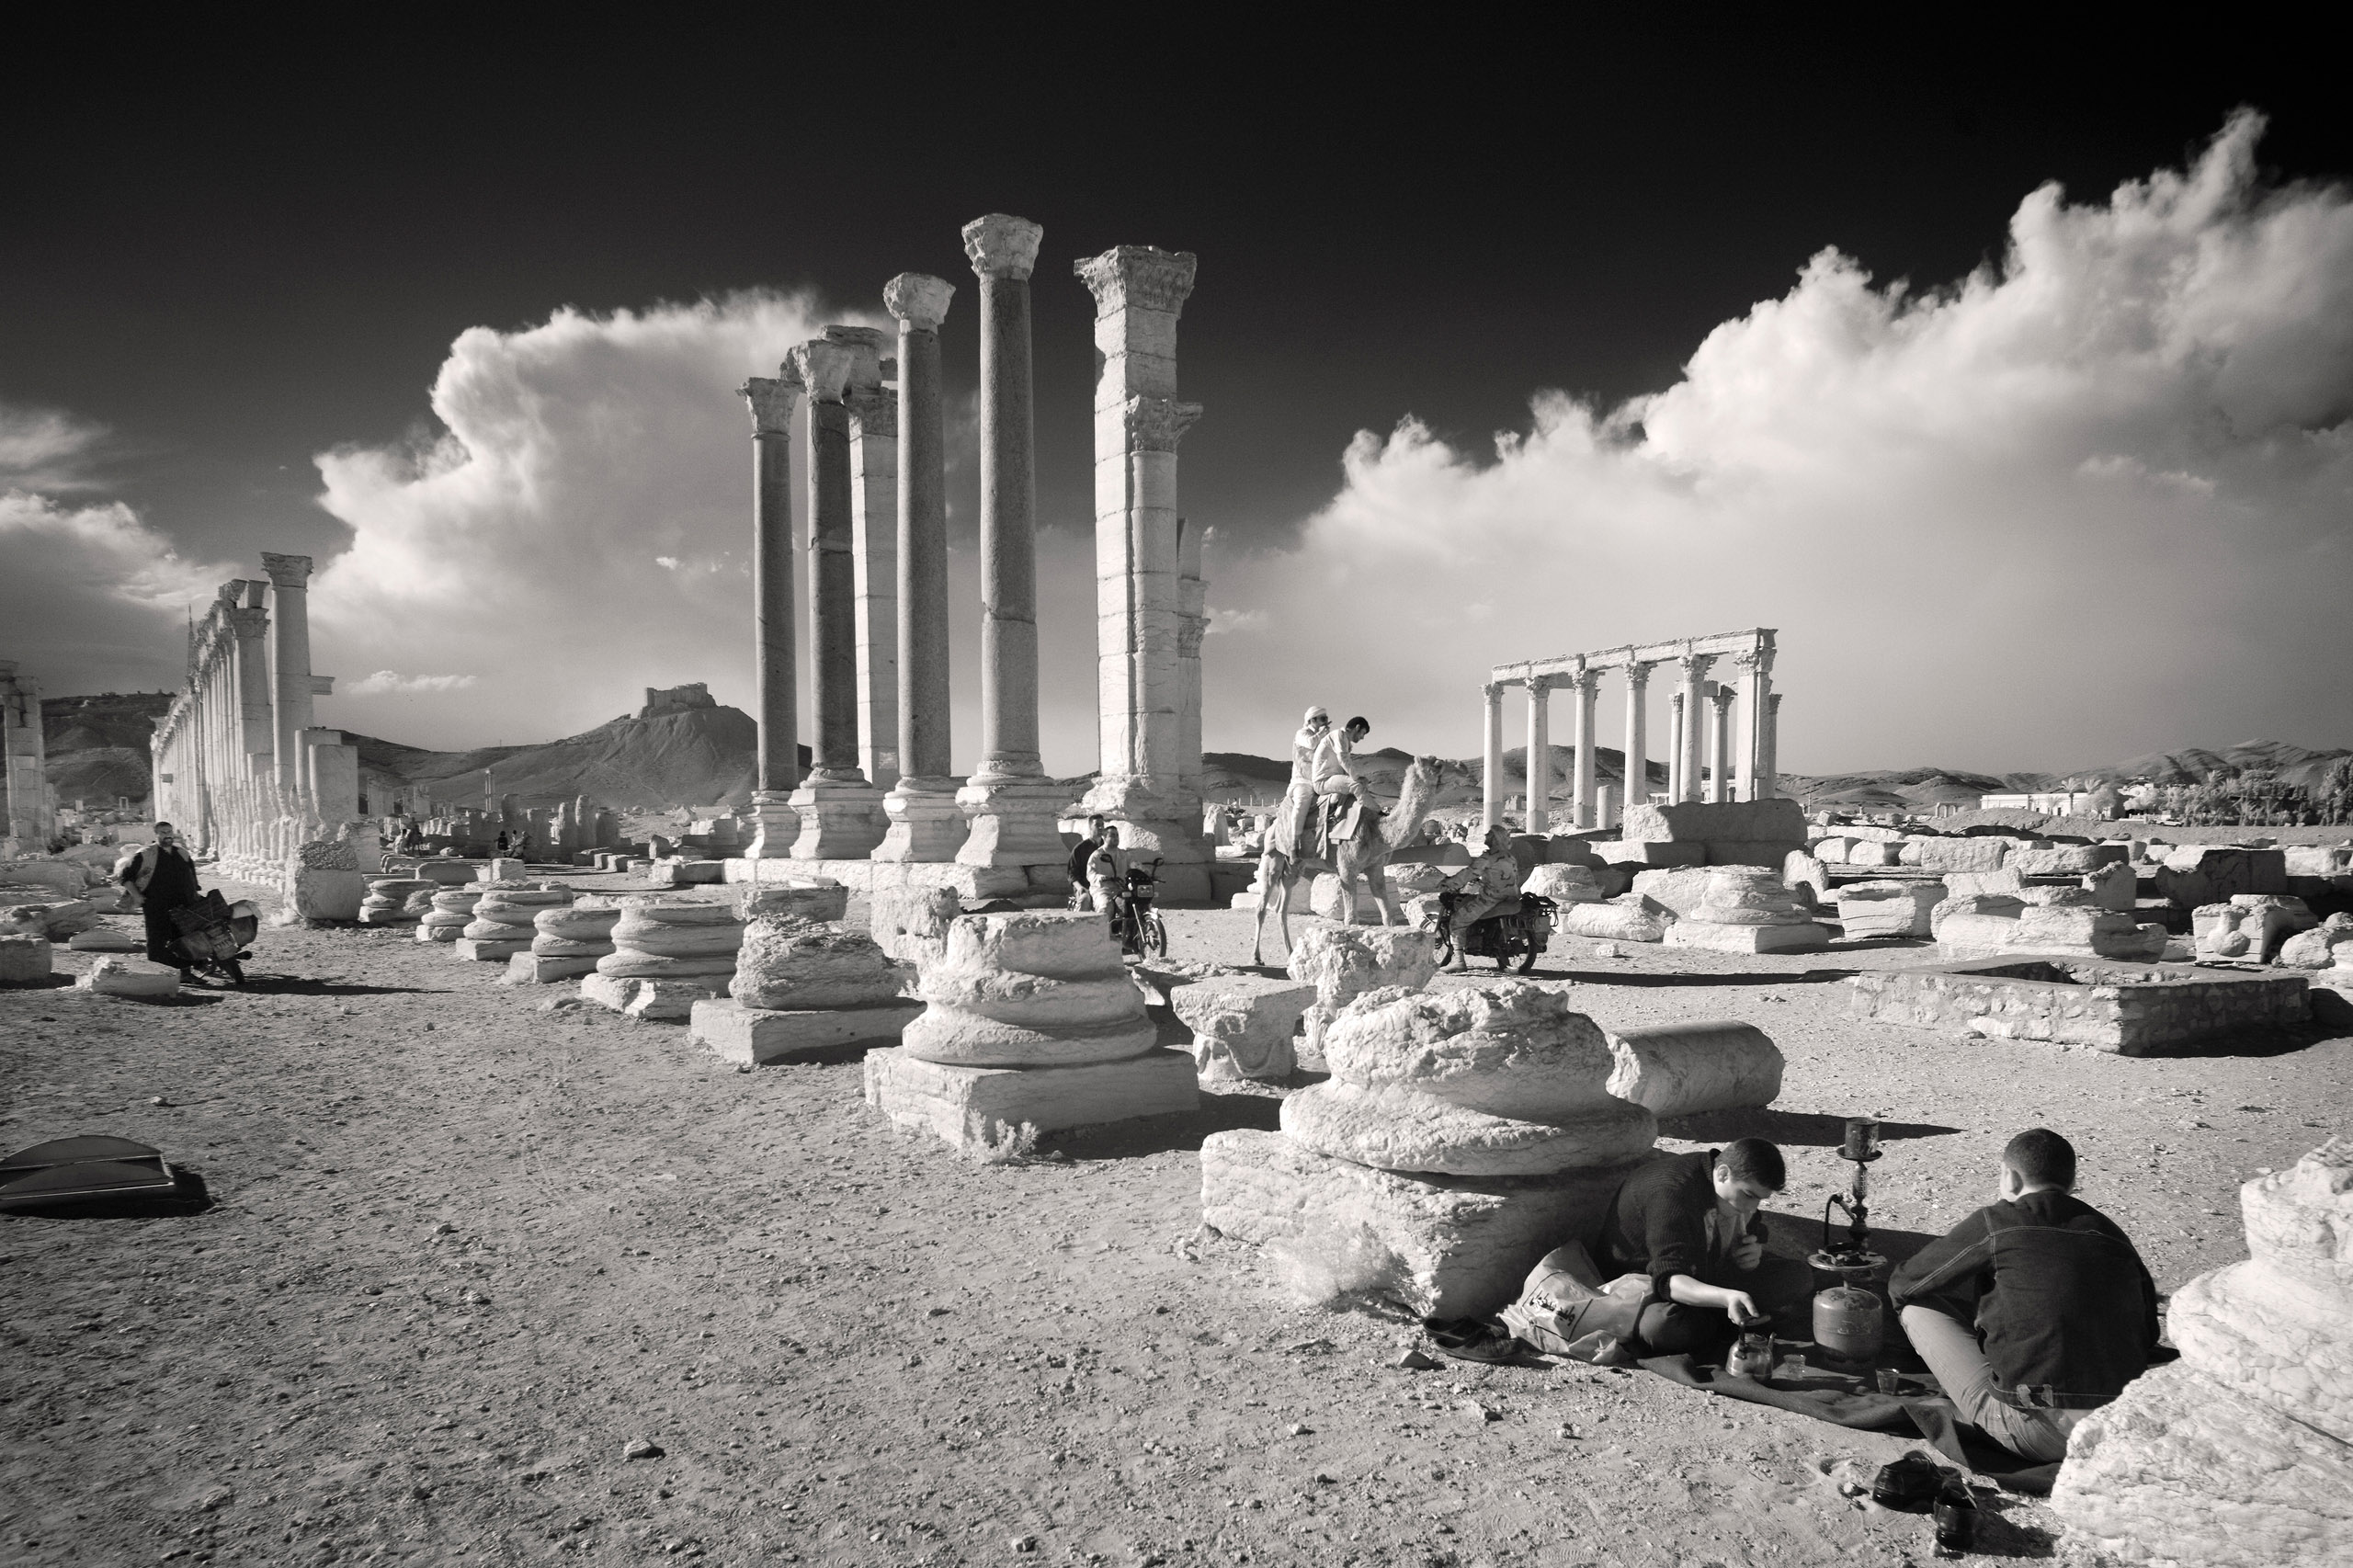 Many locals picnic, stroll, ride horses and motorbikes among the ruins of Palmyra.